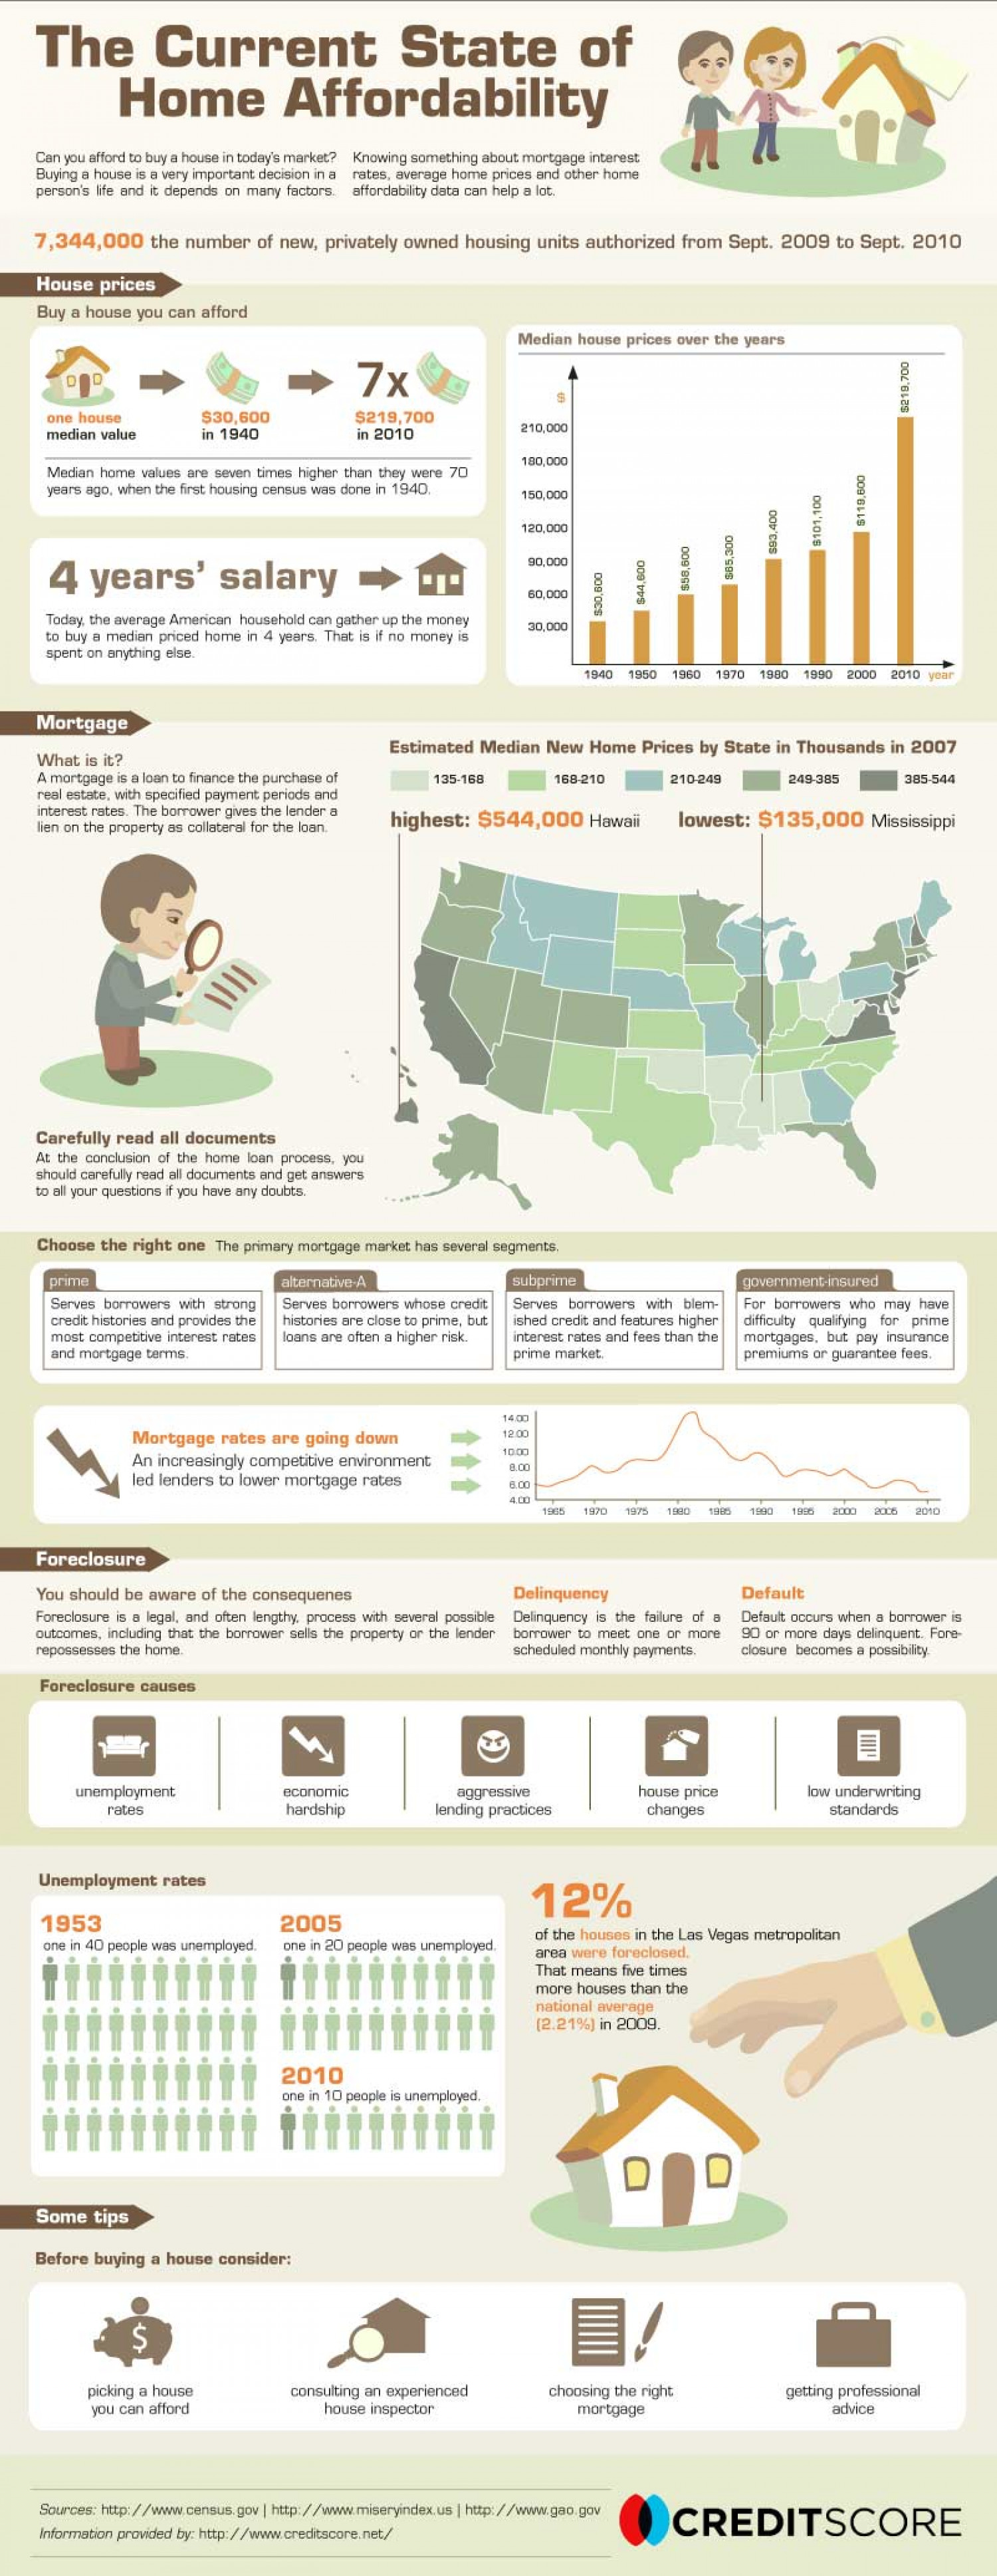 Mortgage Rates Are Low, But Are The Homes Affordable? Infographic